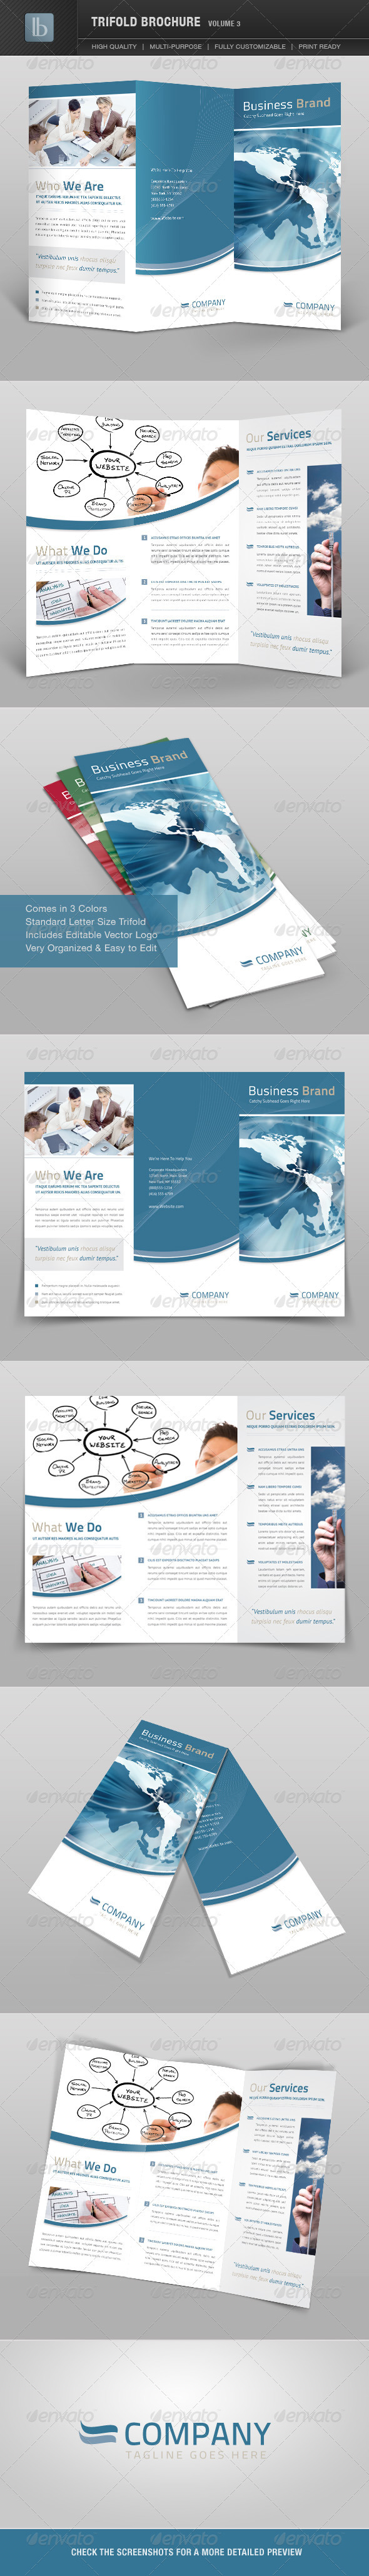 Trifold Brochure | Volume 3 - Corporate Brochures